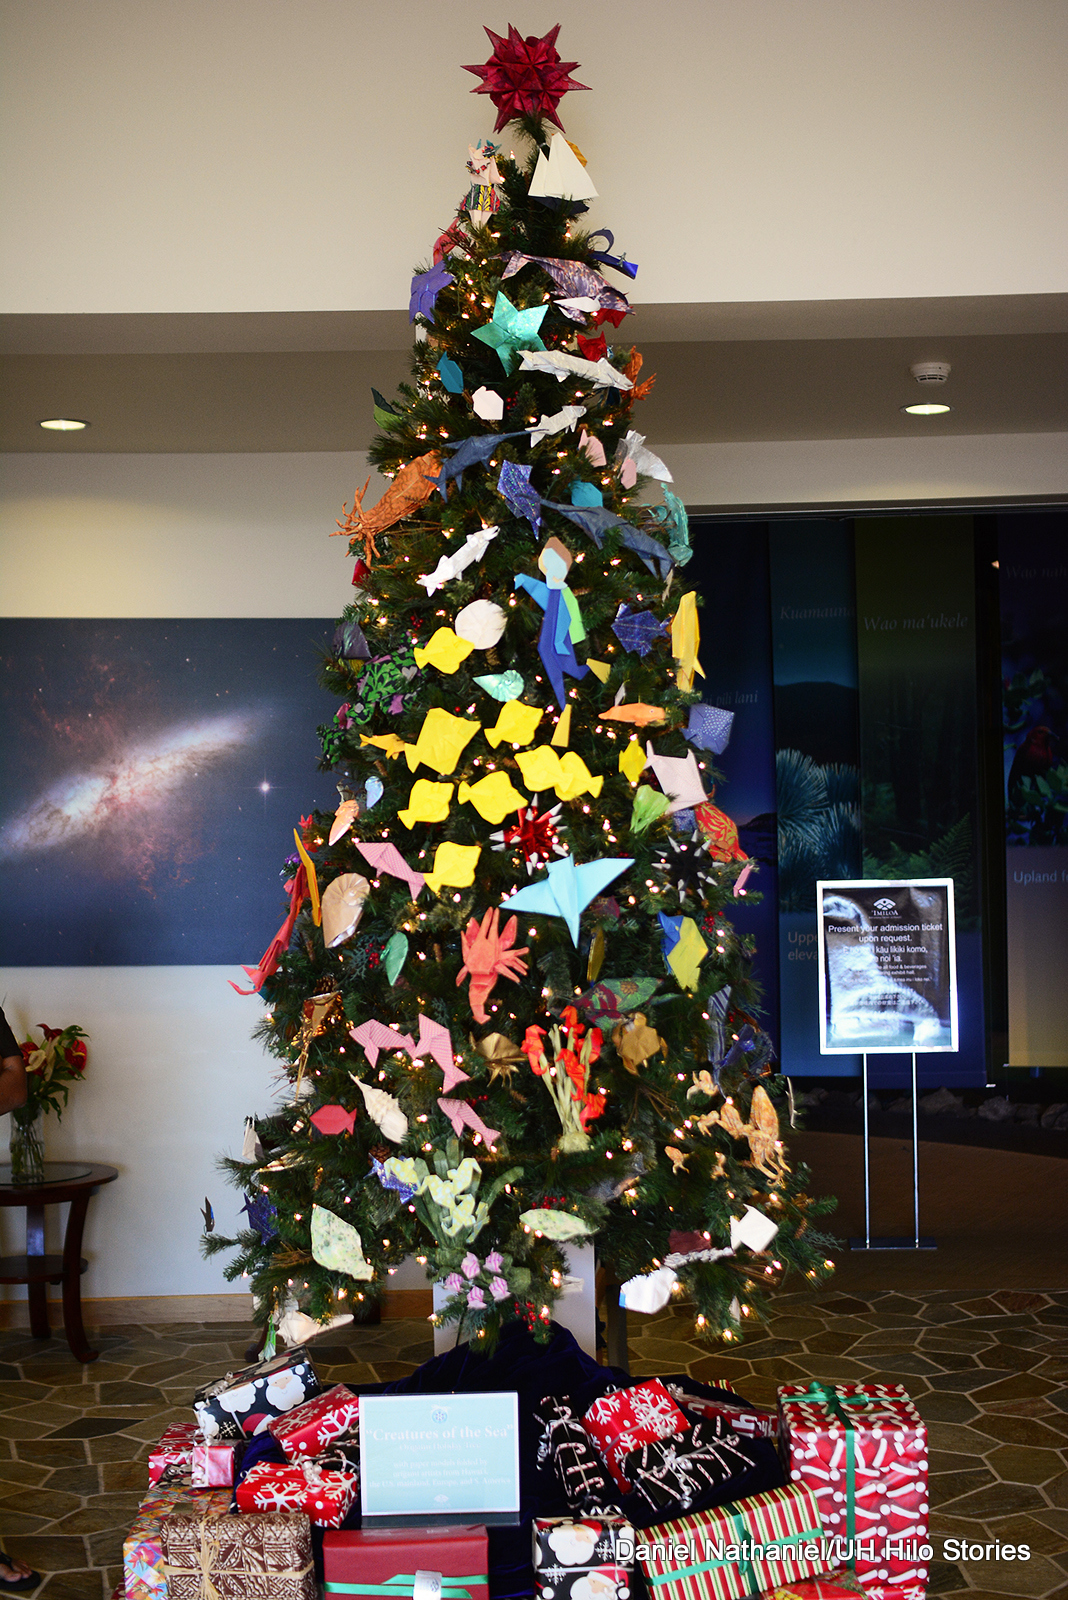 Origami tree at Imiloa (2)